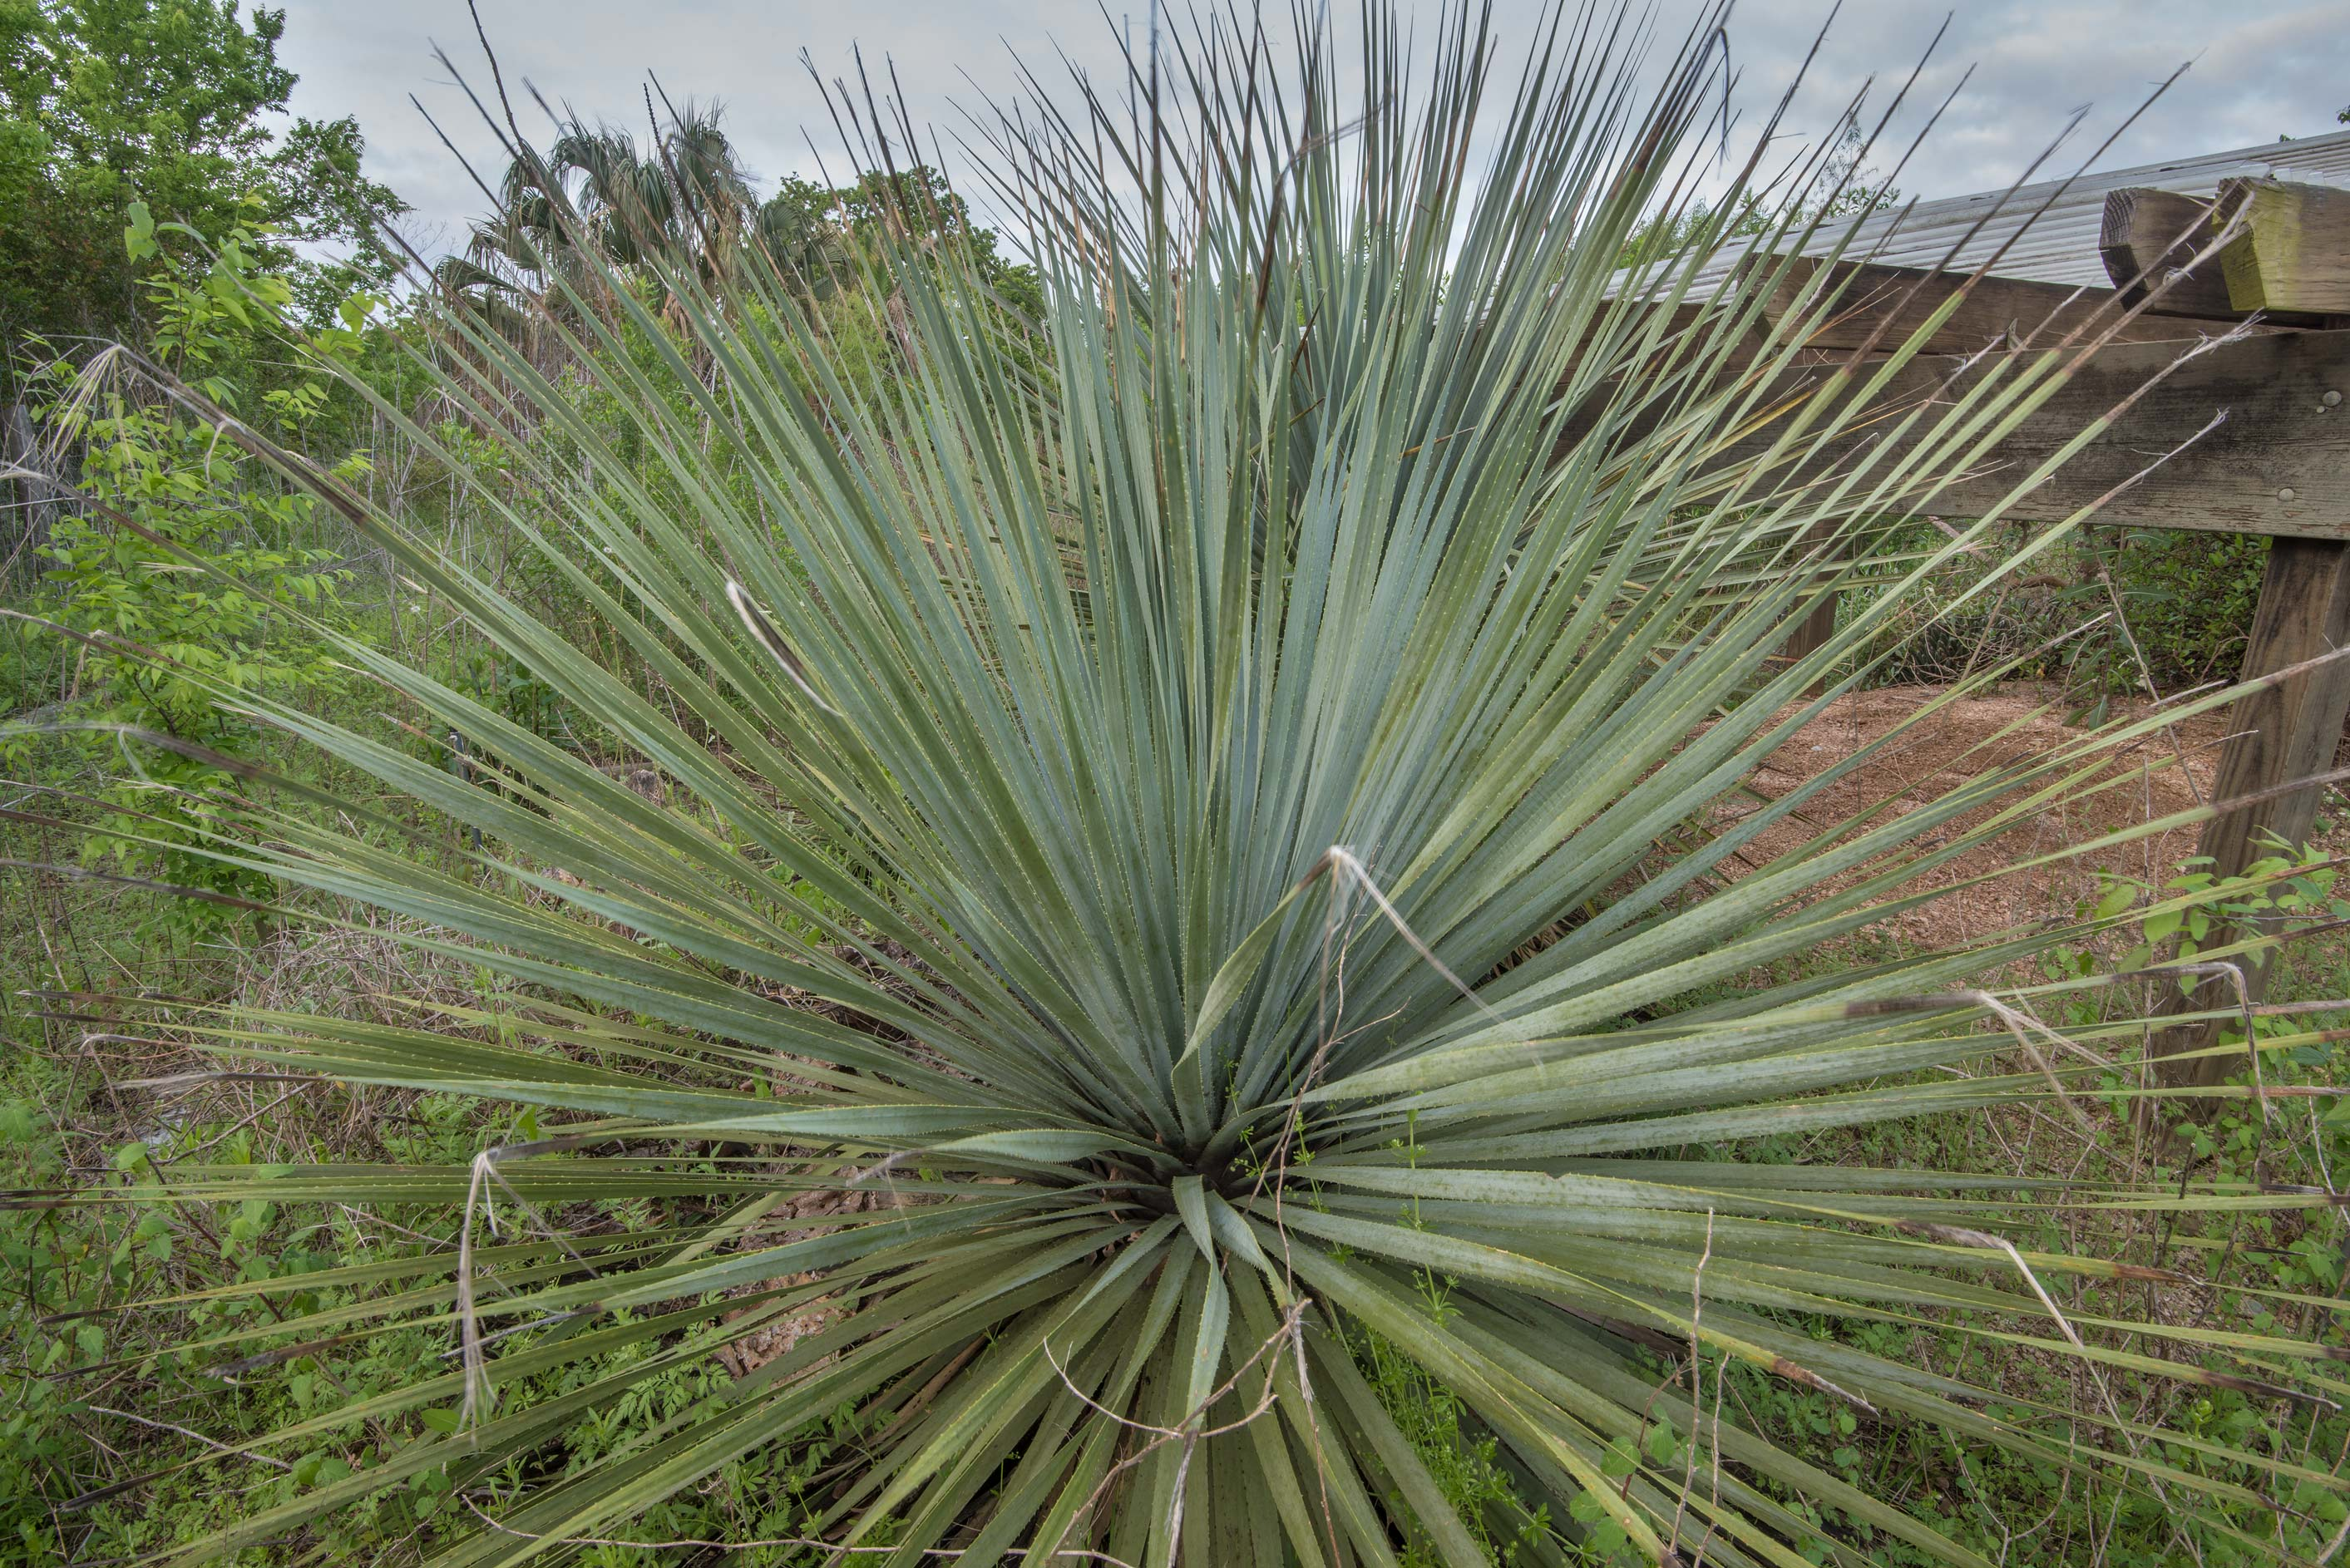 Spiny evergreen plant sotol (Dasylirion) in TAMU...M University. College Station, Texas